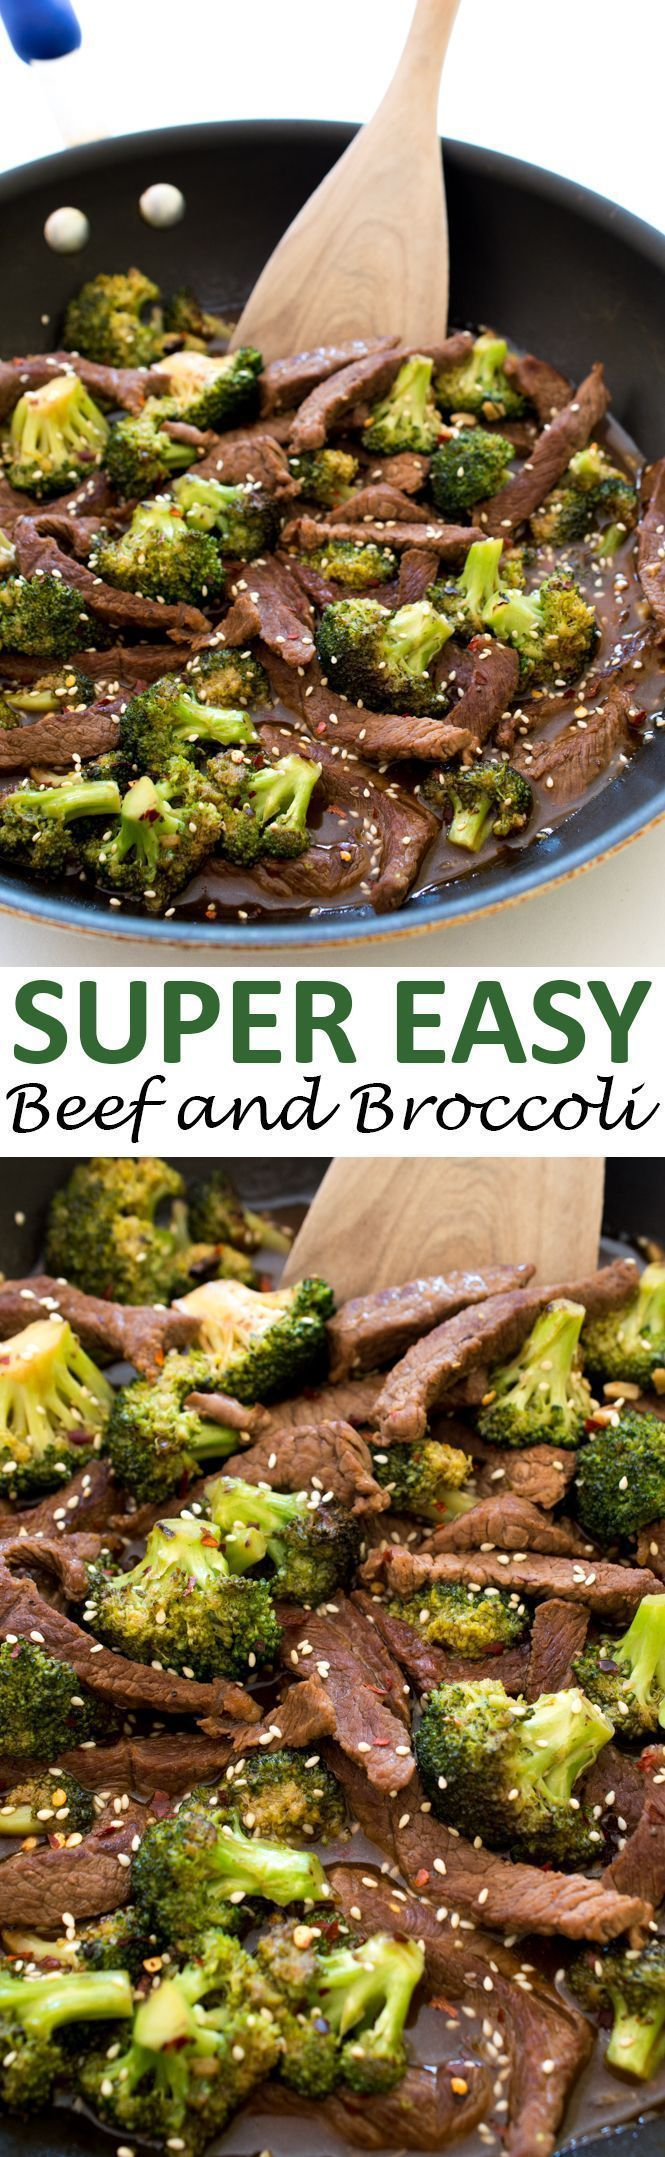 Easy 20 Minute Beef and Broccoli.